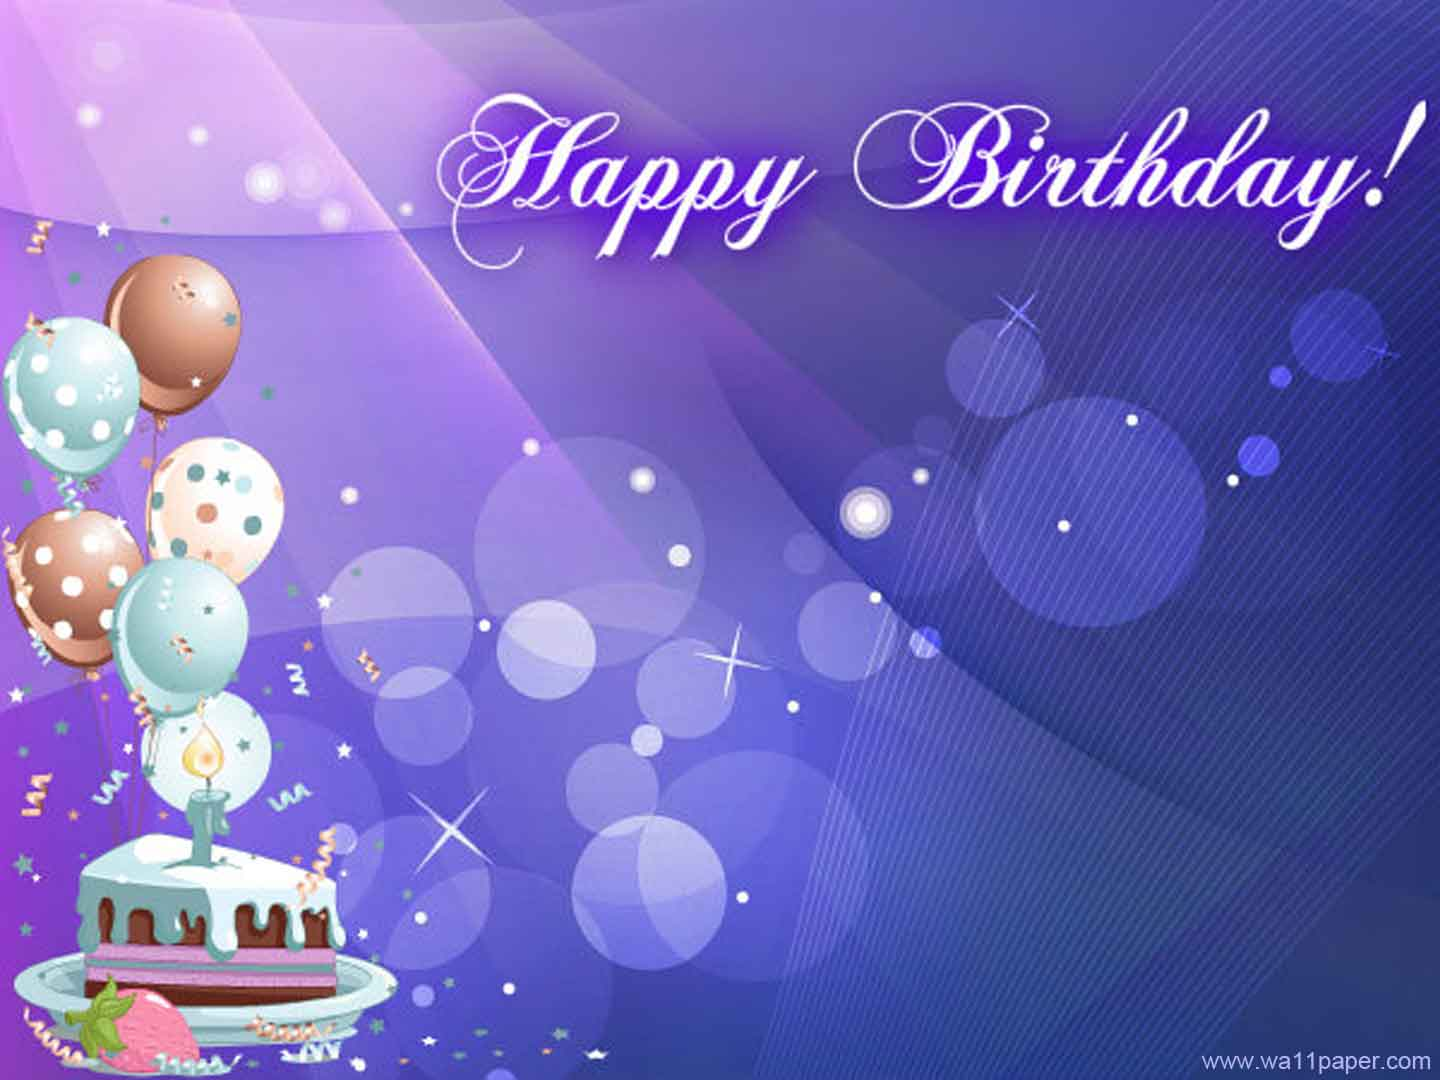 132 @ Birthday Images and Cards